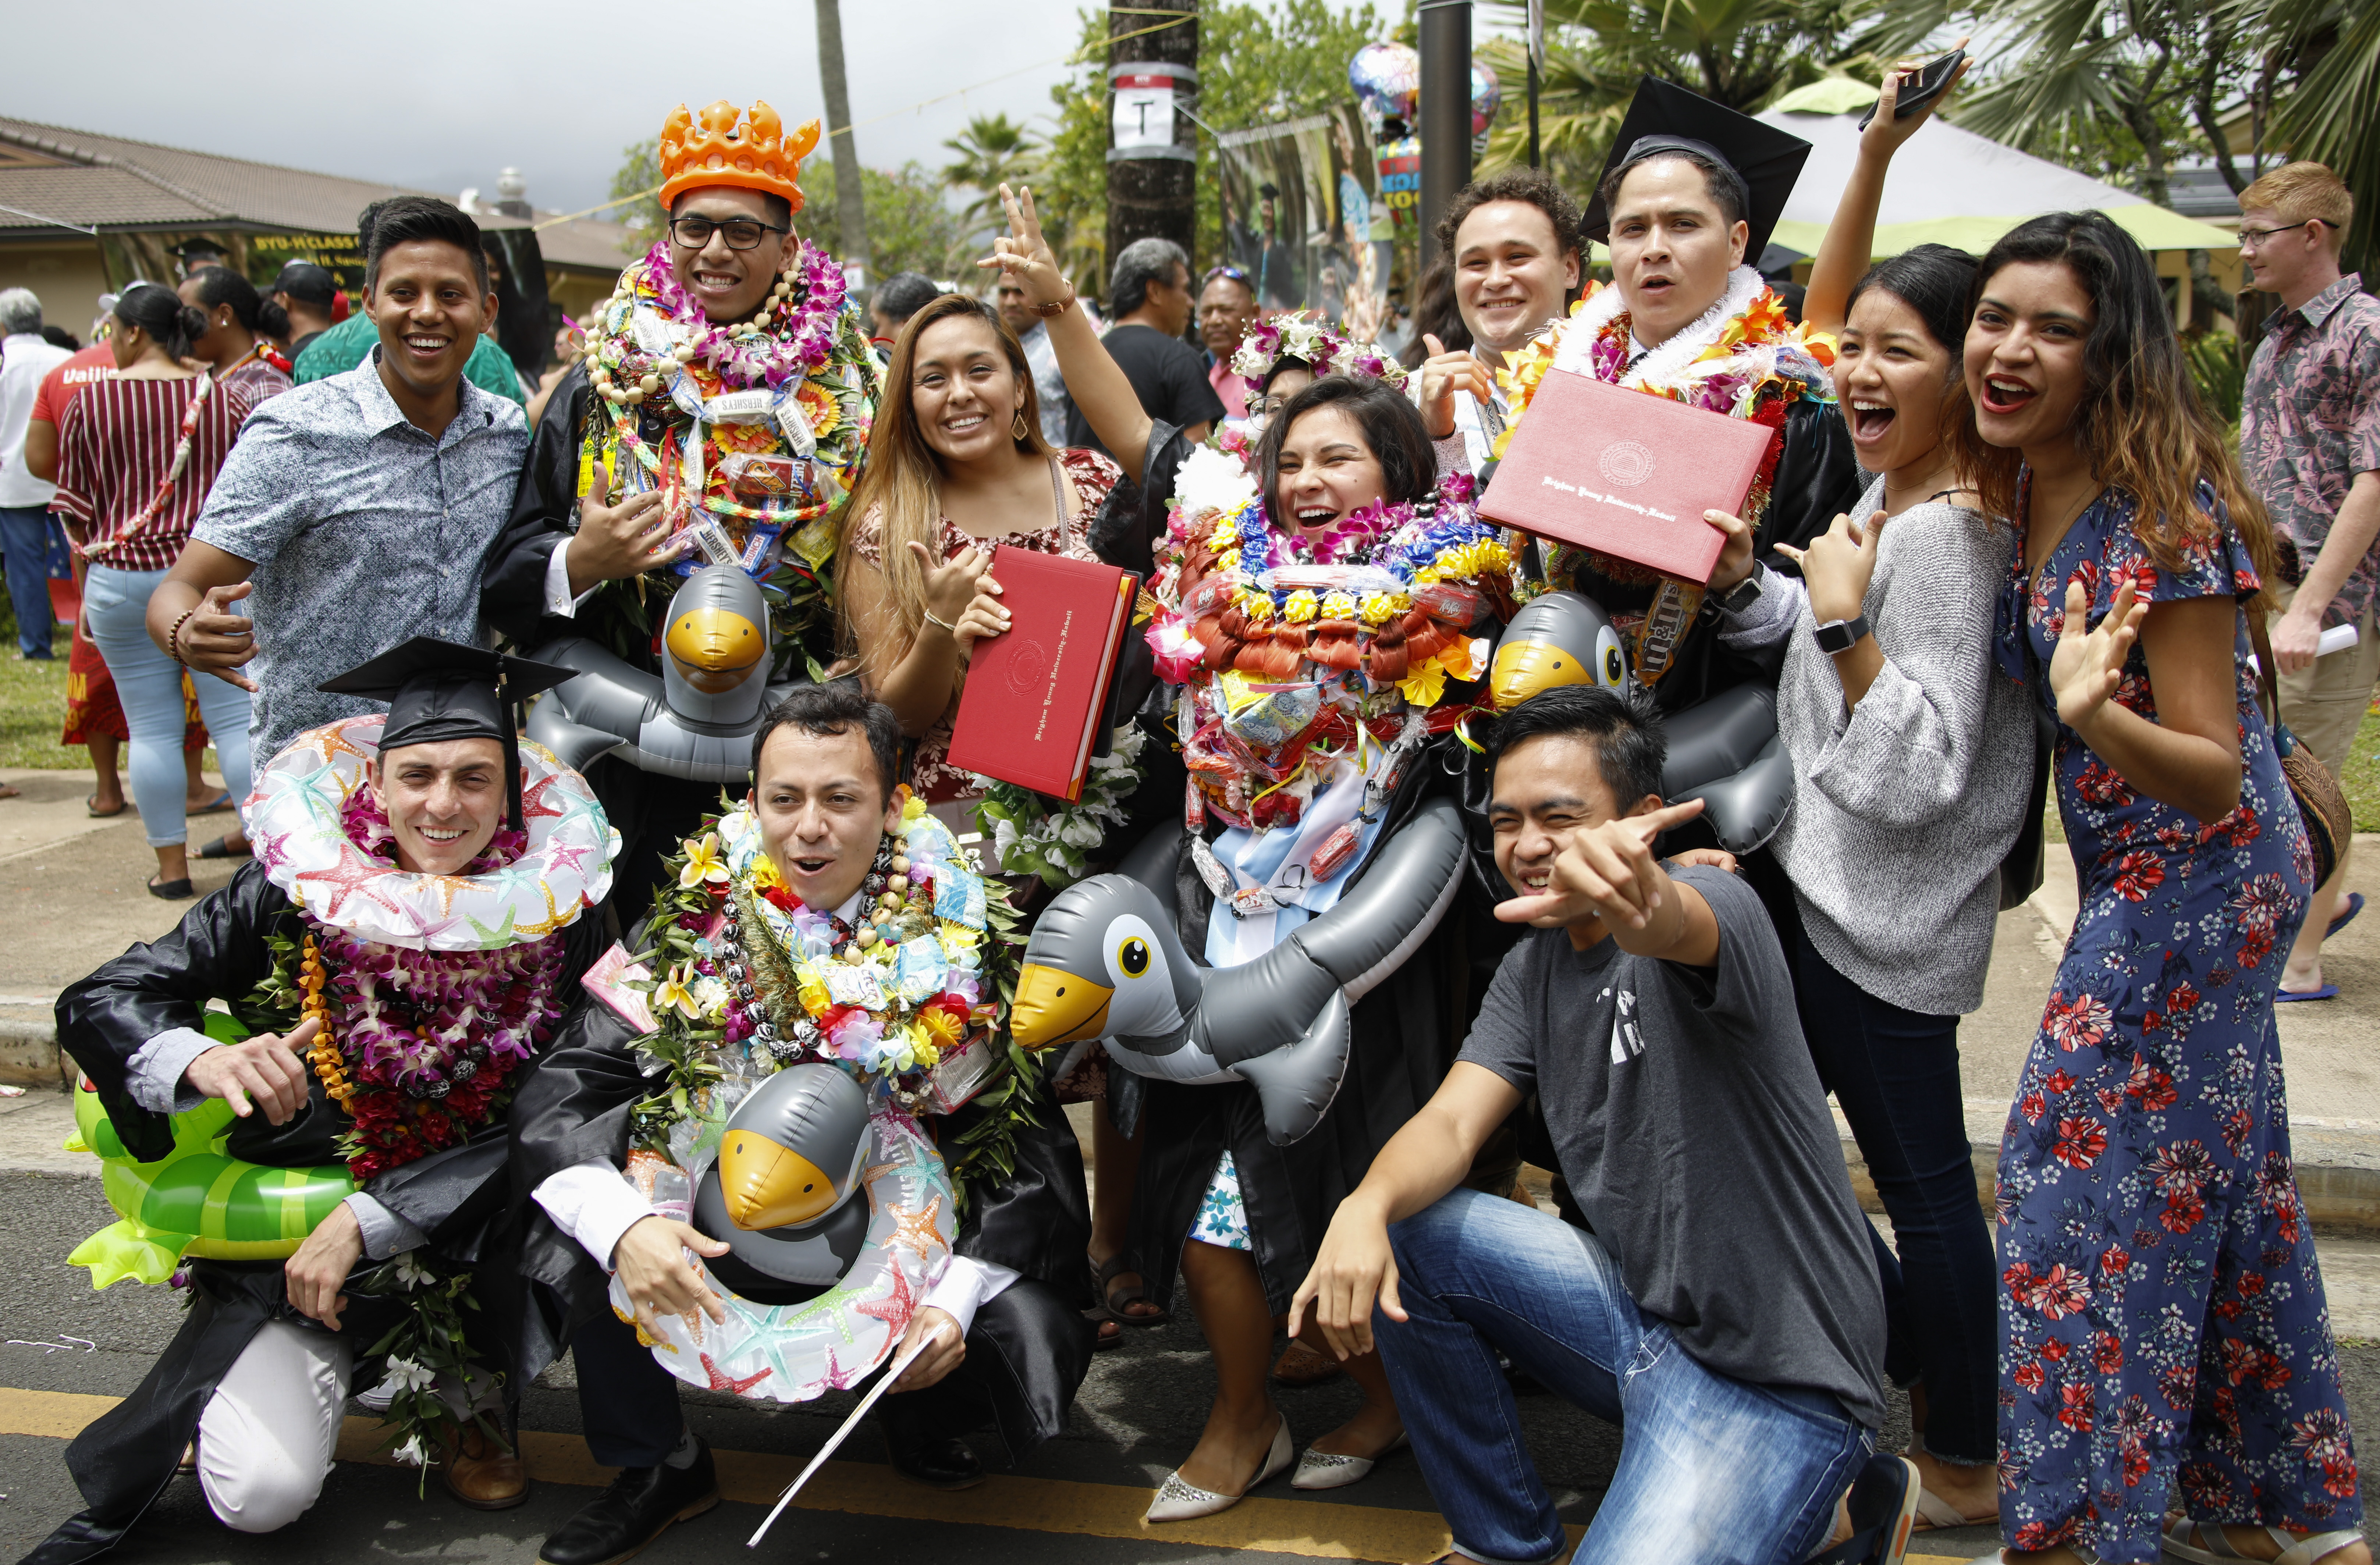 Graduates celebrate with family and friends following the BYU-Hawaii Winter Semester Commencement ceremony on April 20, 2019.